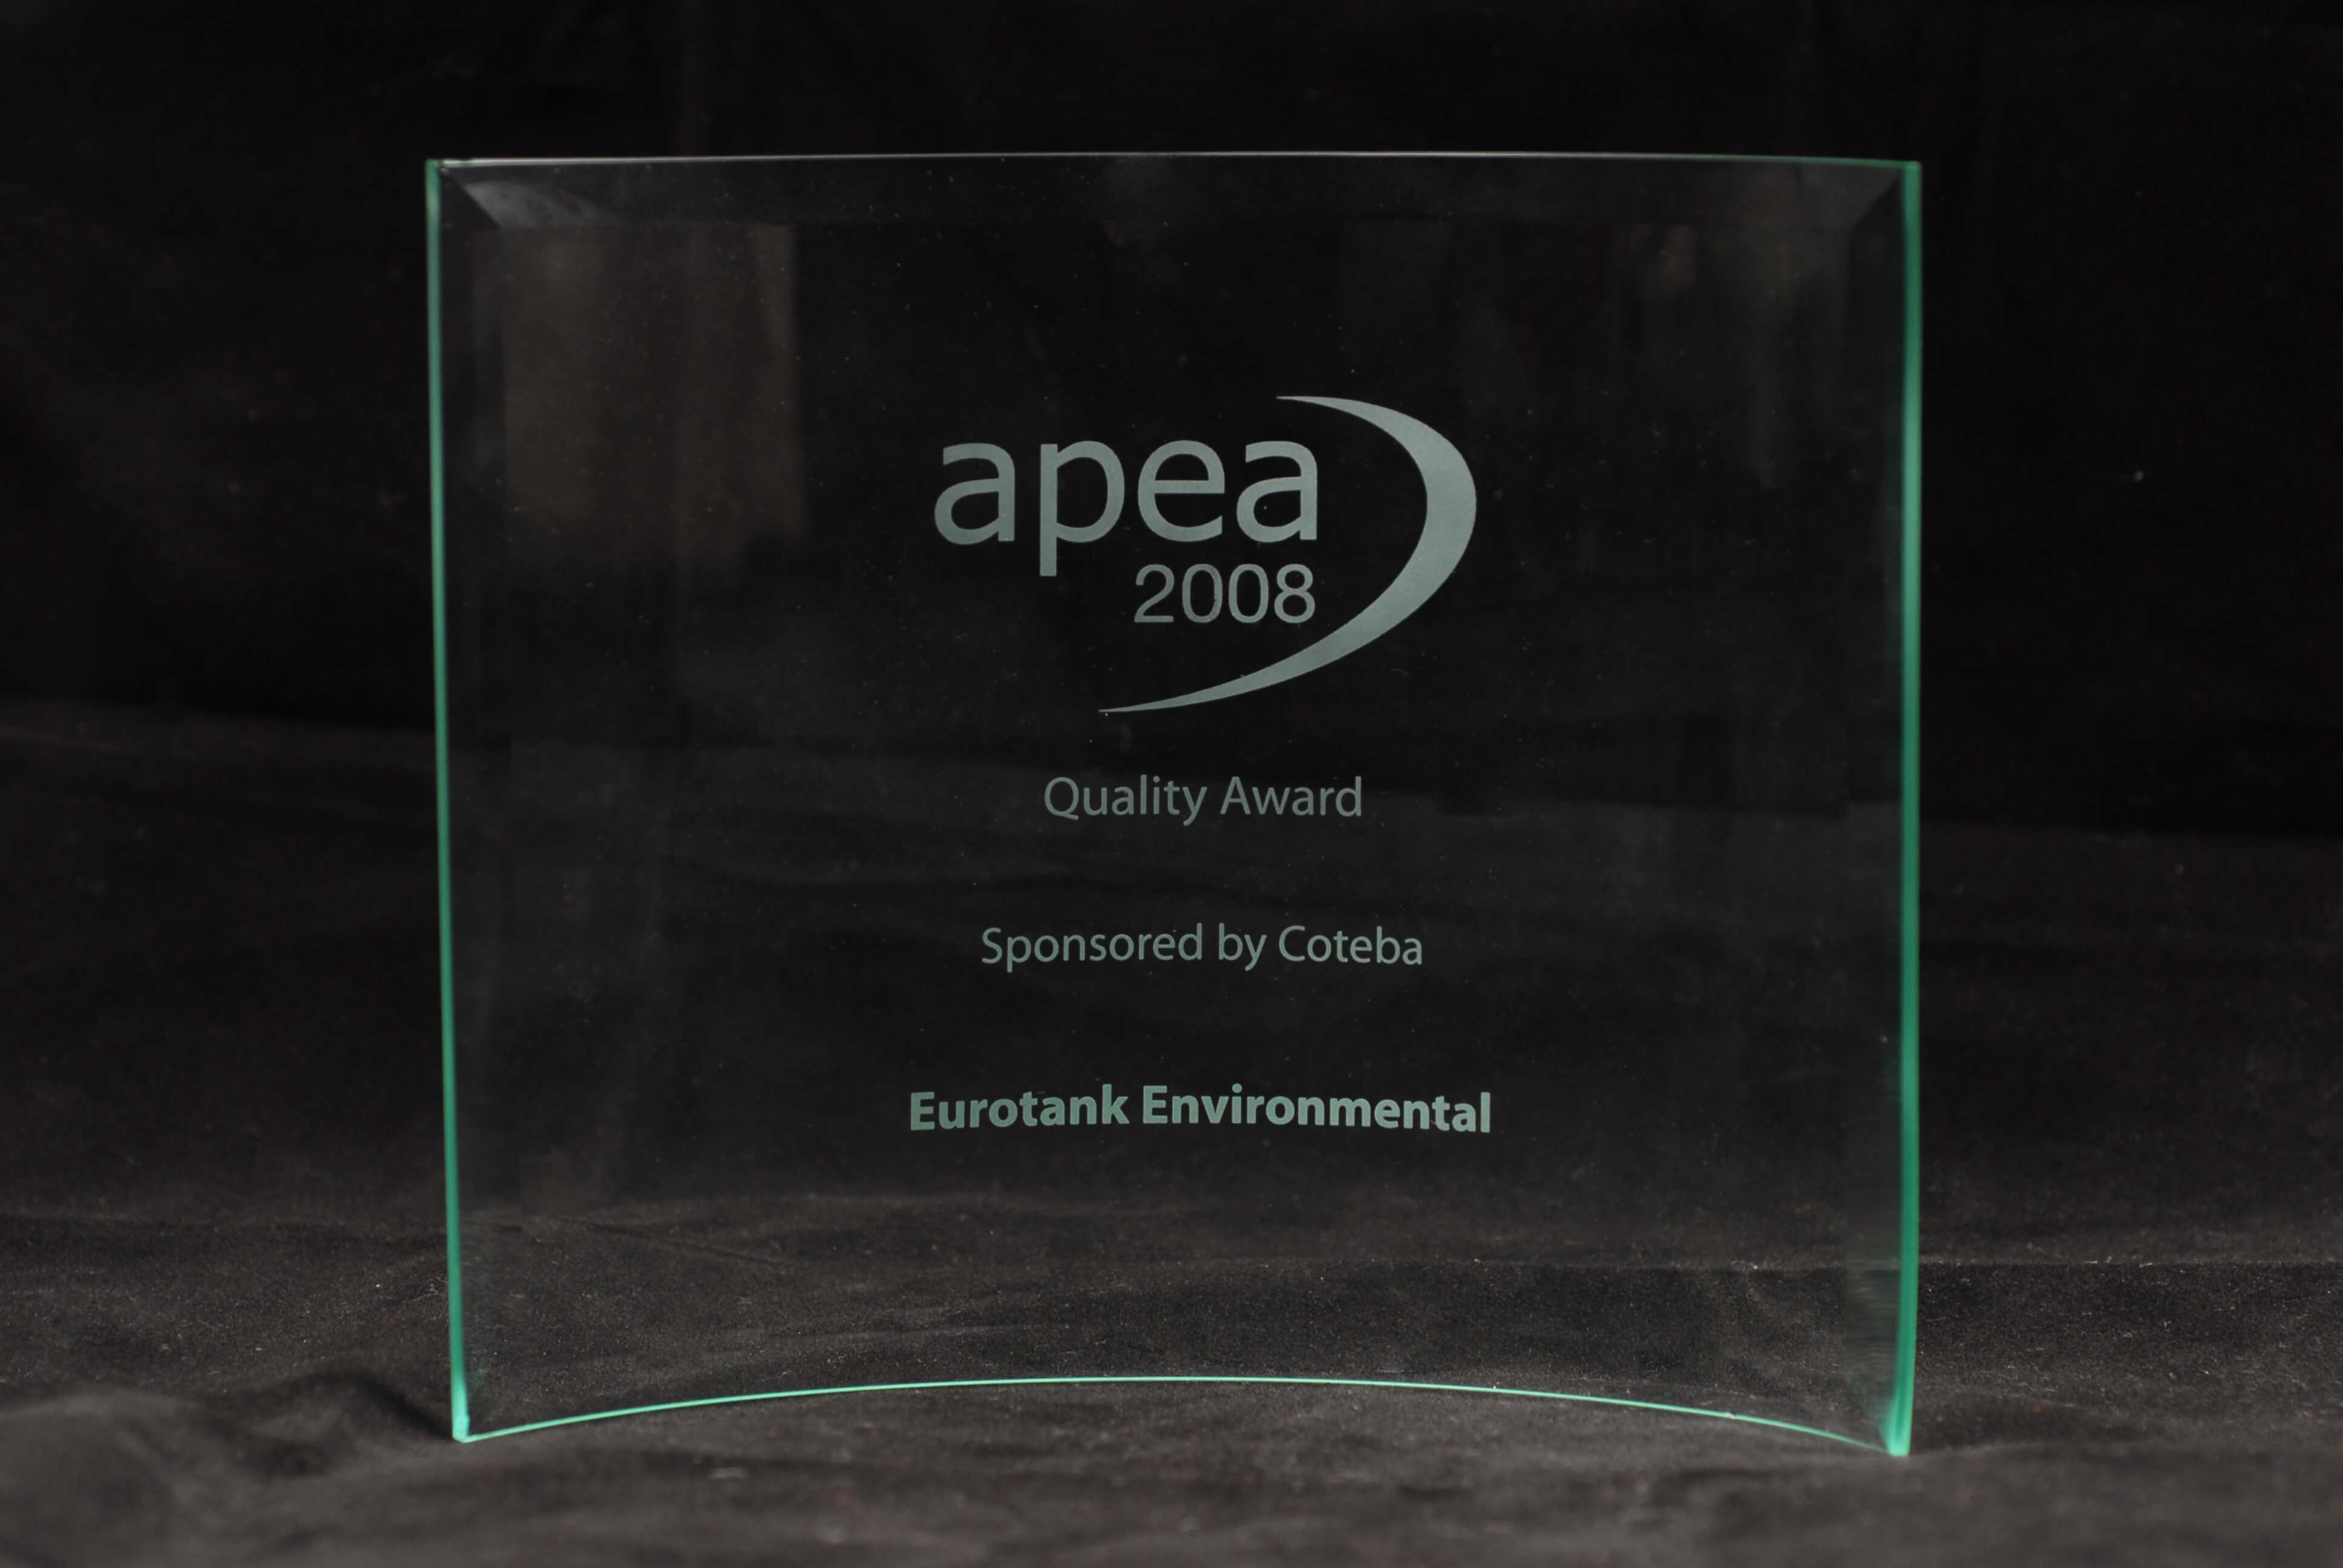 Quality Award by the APEA for our significant investment